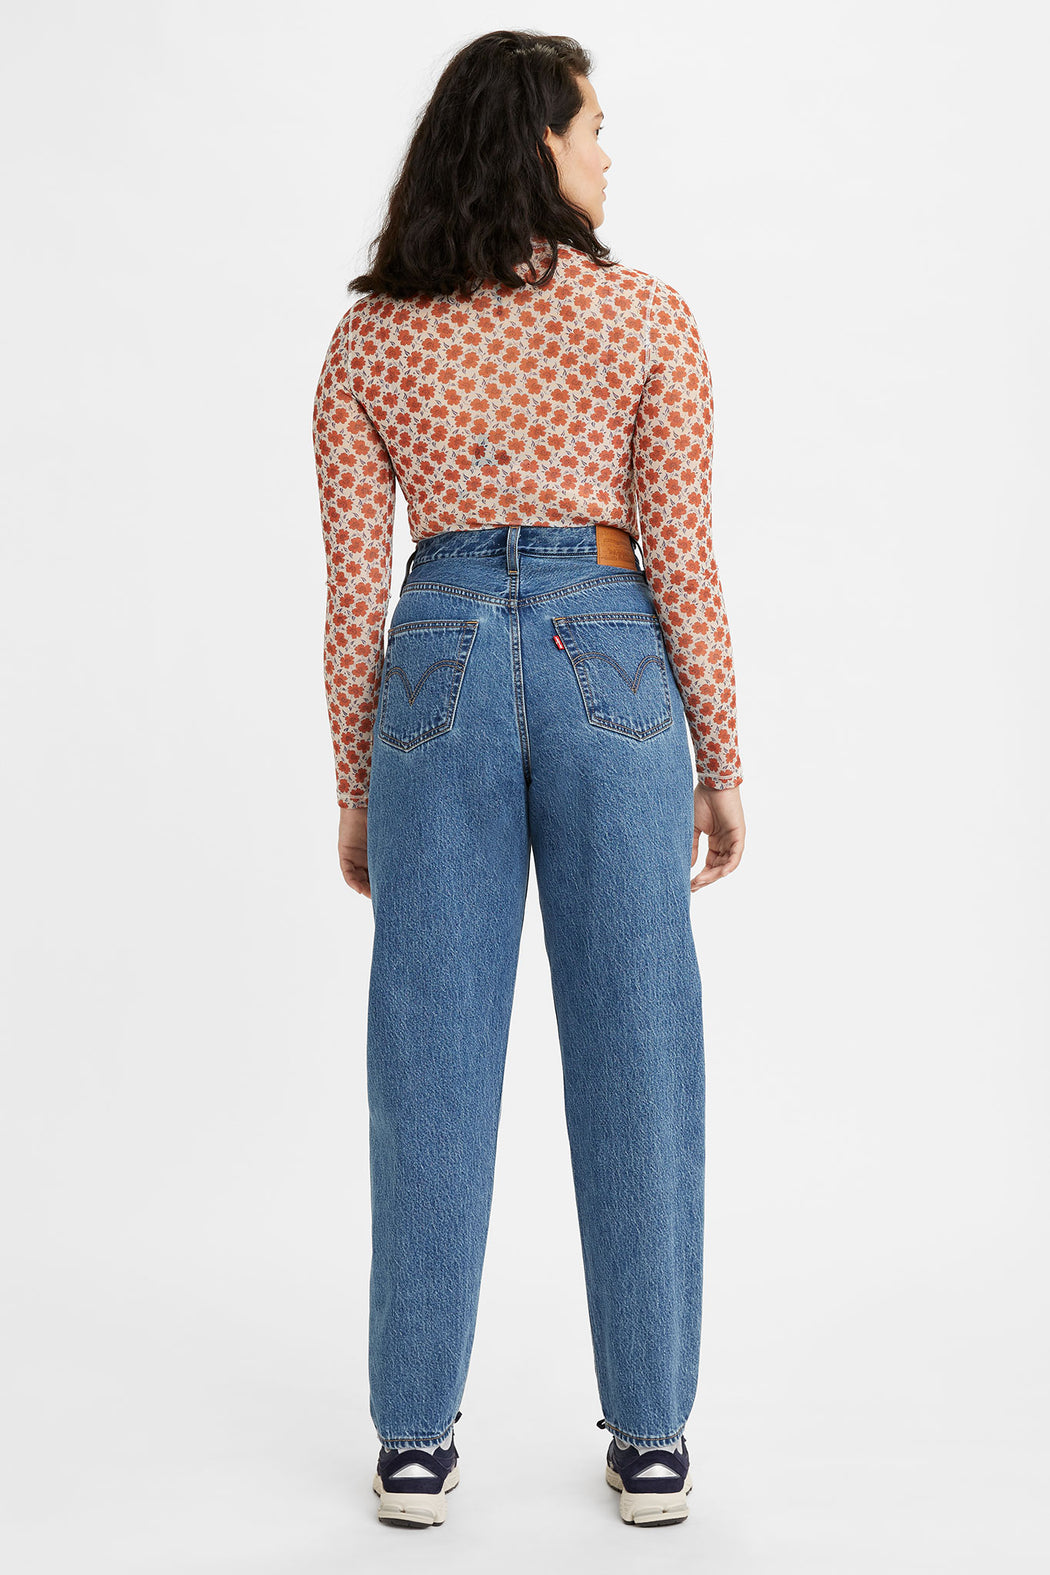 Levis-High-Loose-Taper-Fit-Jeans-Hold-My-Purse